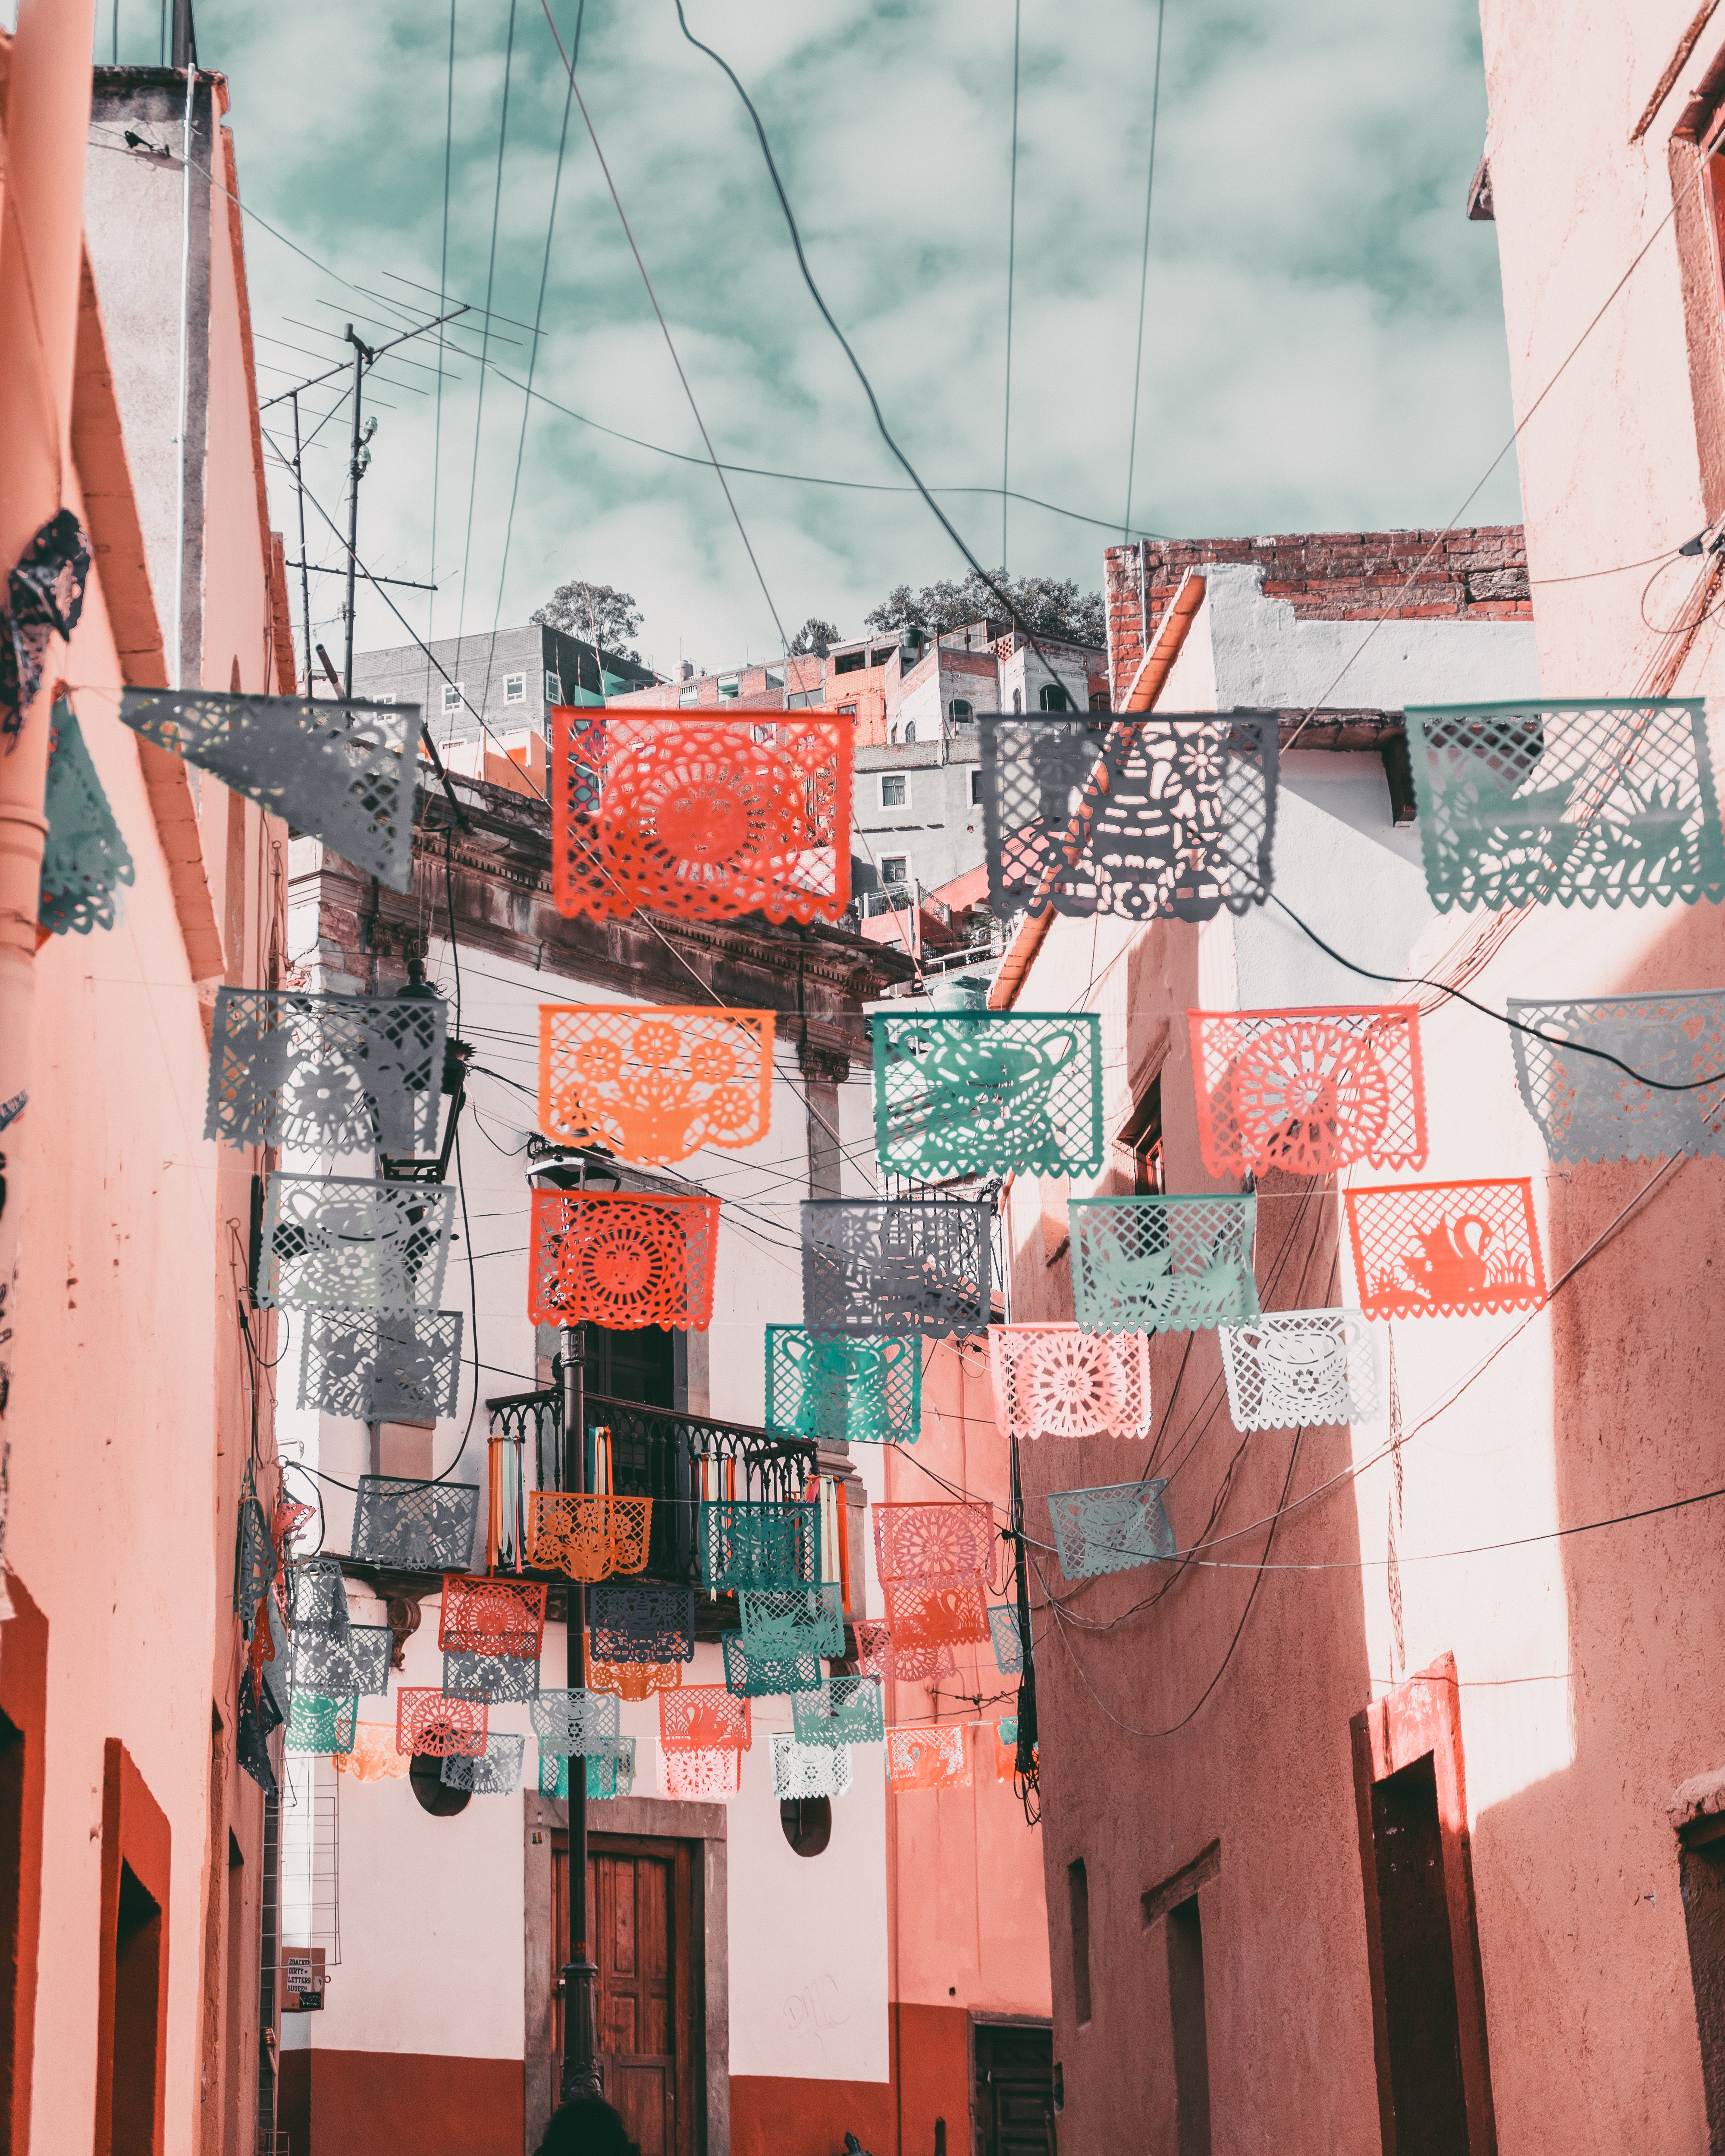 157396 download wallpaper Street, Napkins, Mexico, Architecture, Cities screensavers and pictures for free